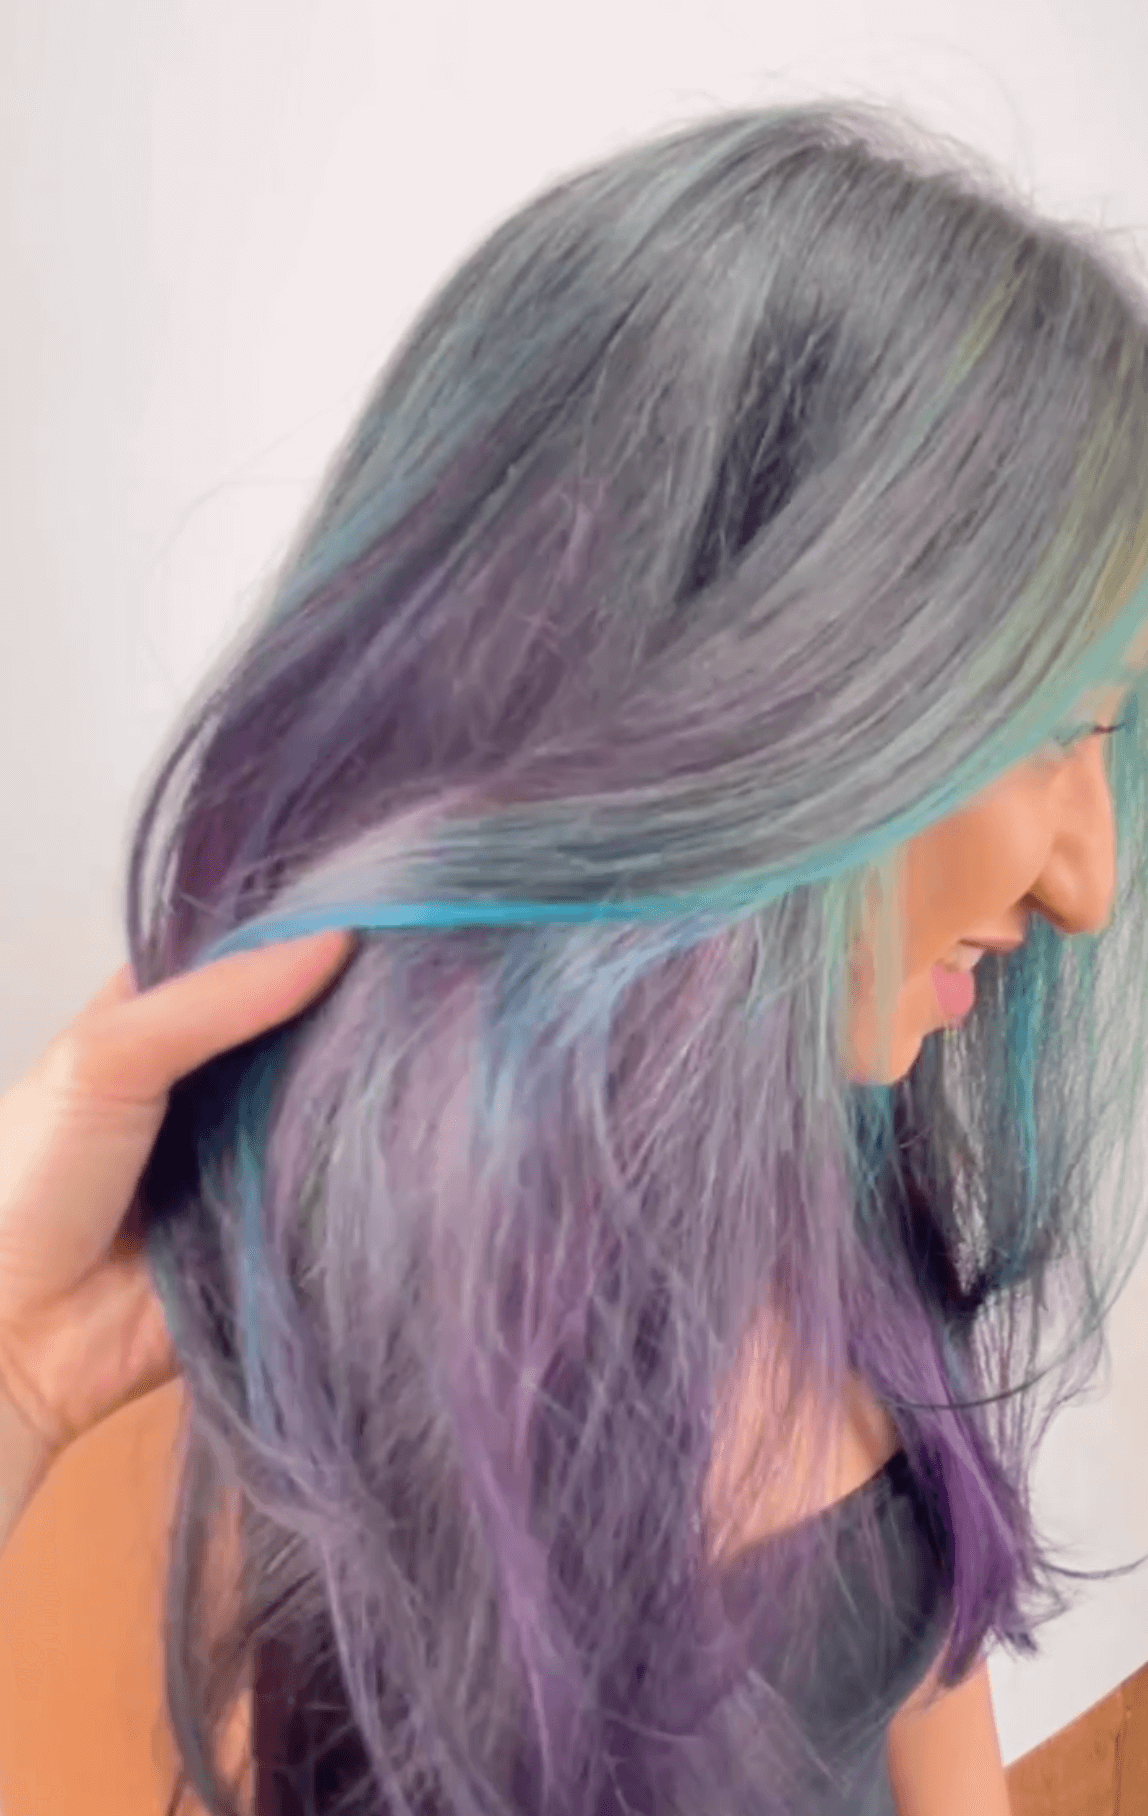 woman showing off grey, purple and blue hair